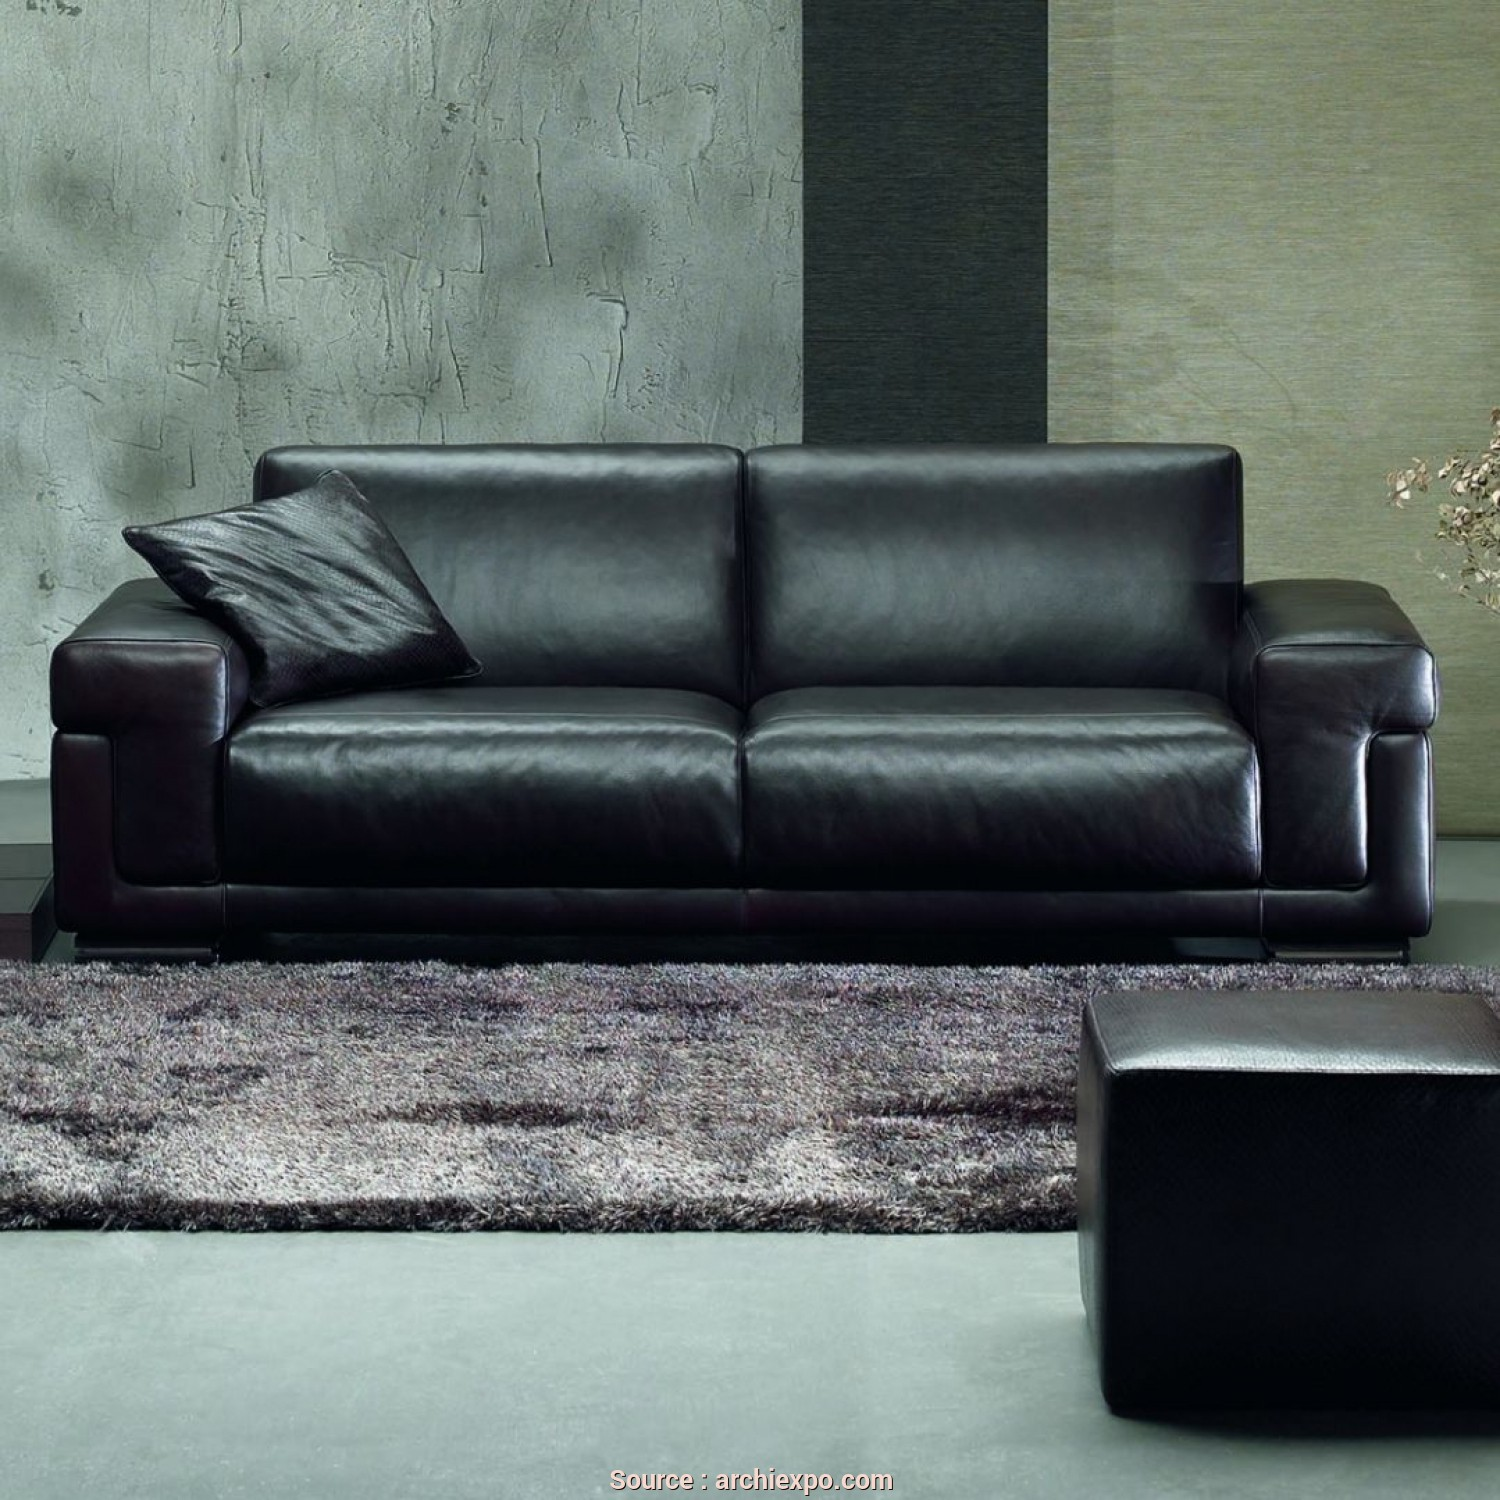 Divani By Natuzzi In Pelle, Sbalorditivo Modular Sofa / Contemporary / Leather / 2-Person, METROPOLE, NATUZZI